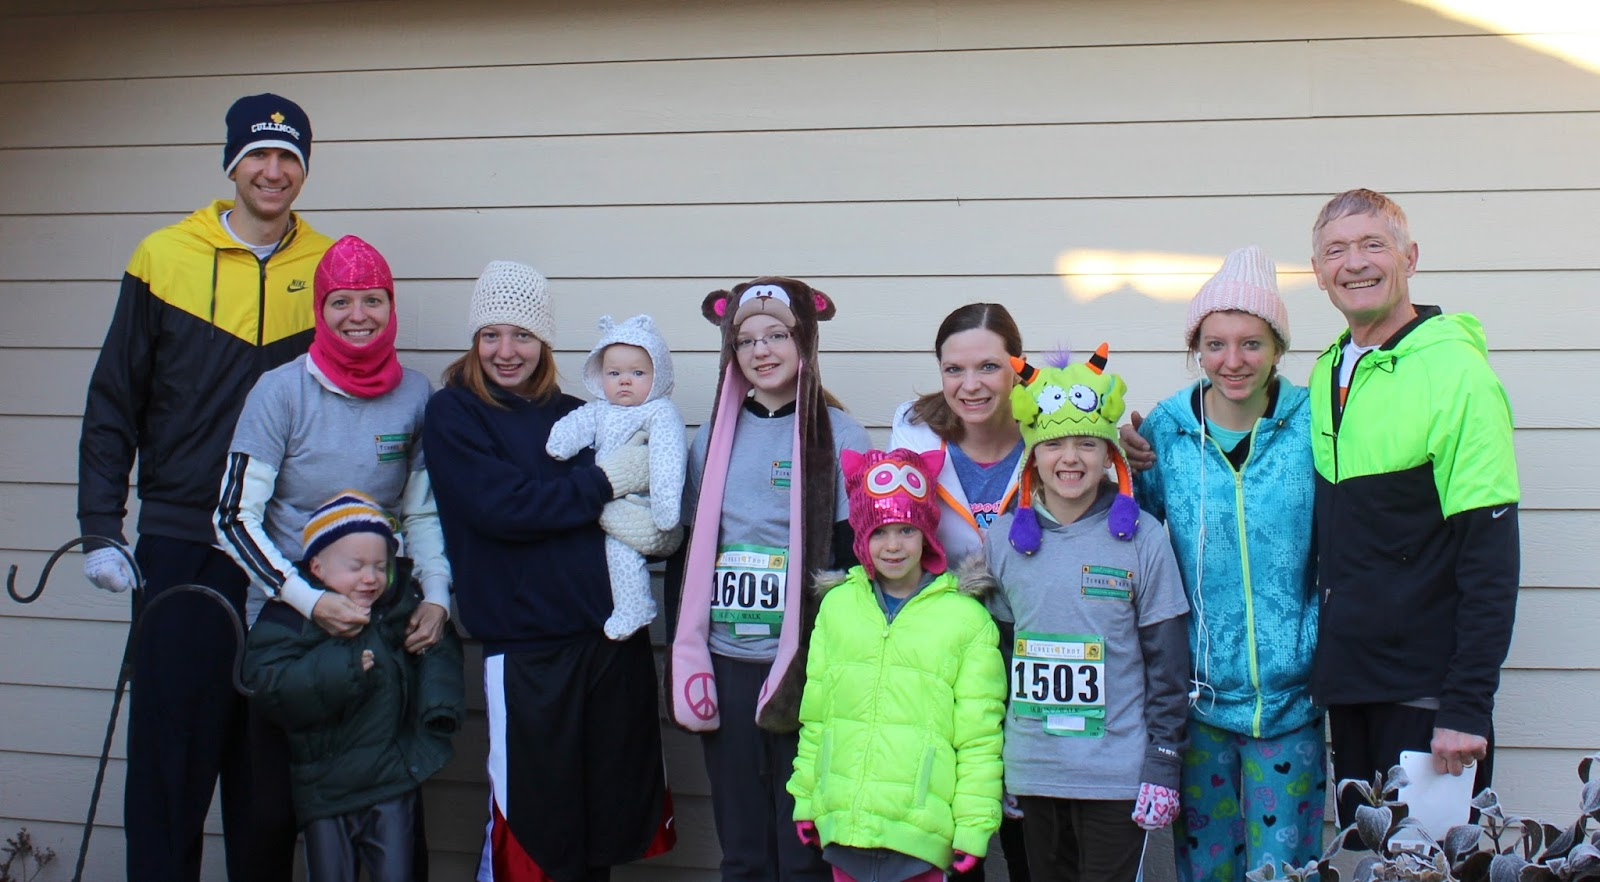 Ready to run the Clark County Turkey Trot